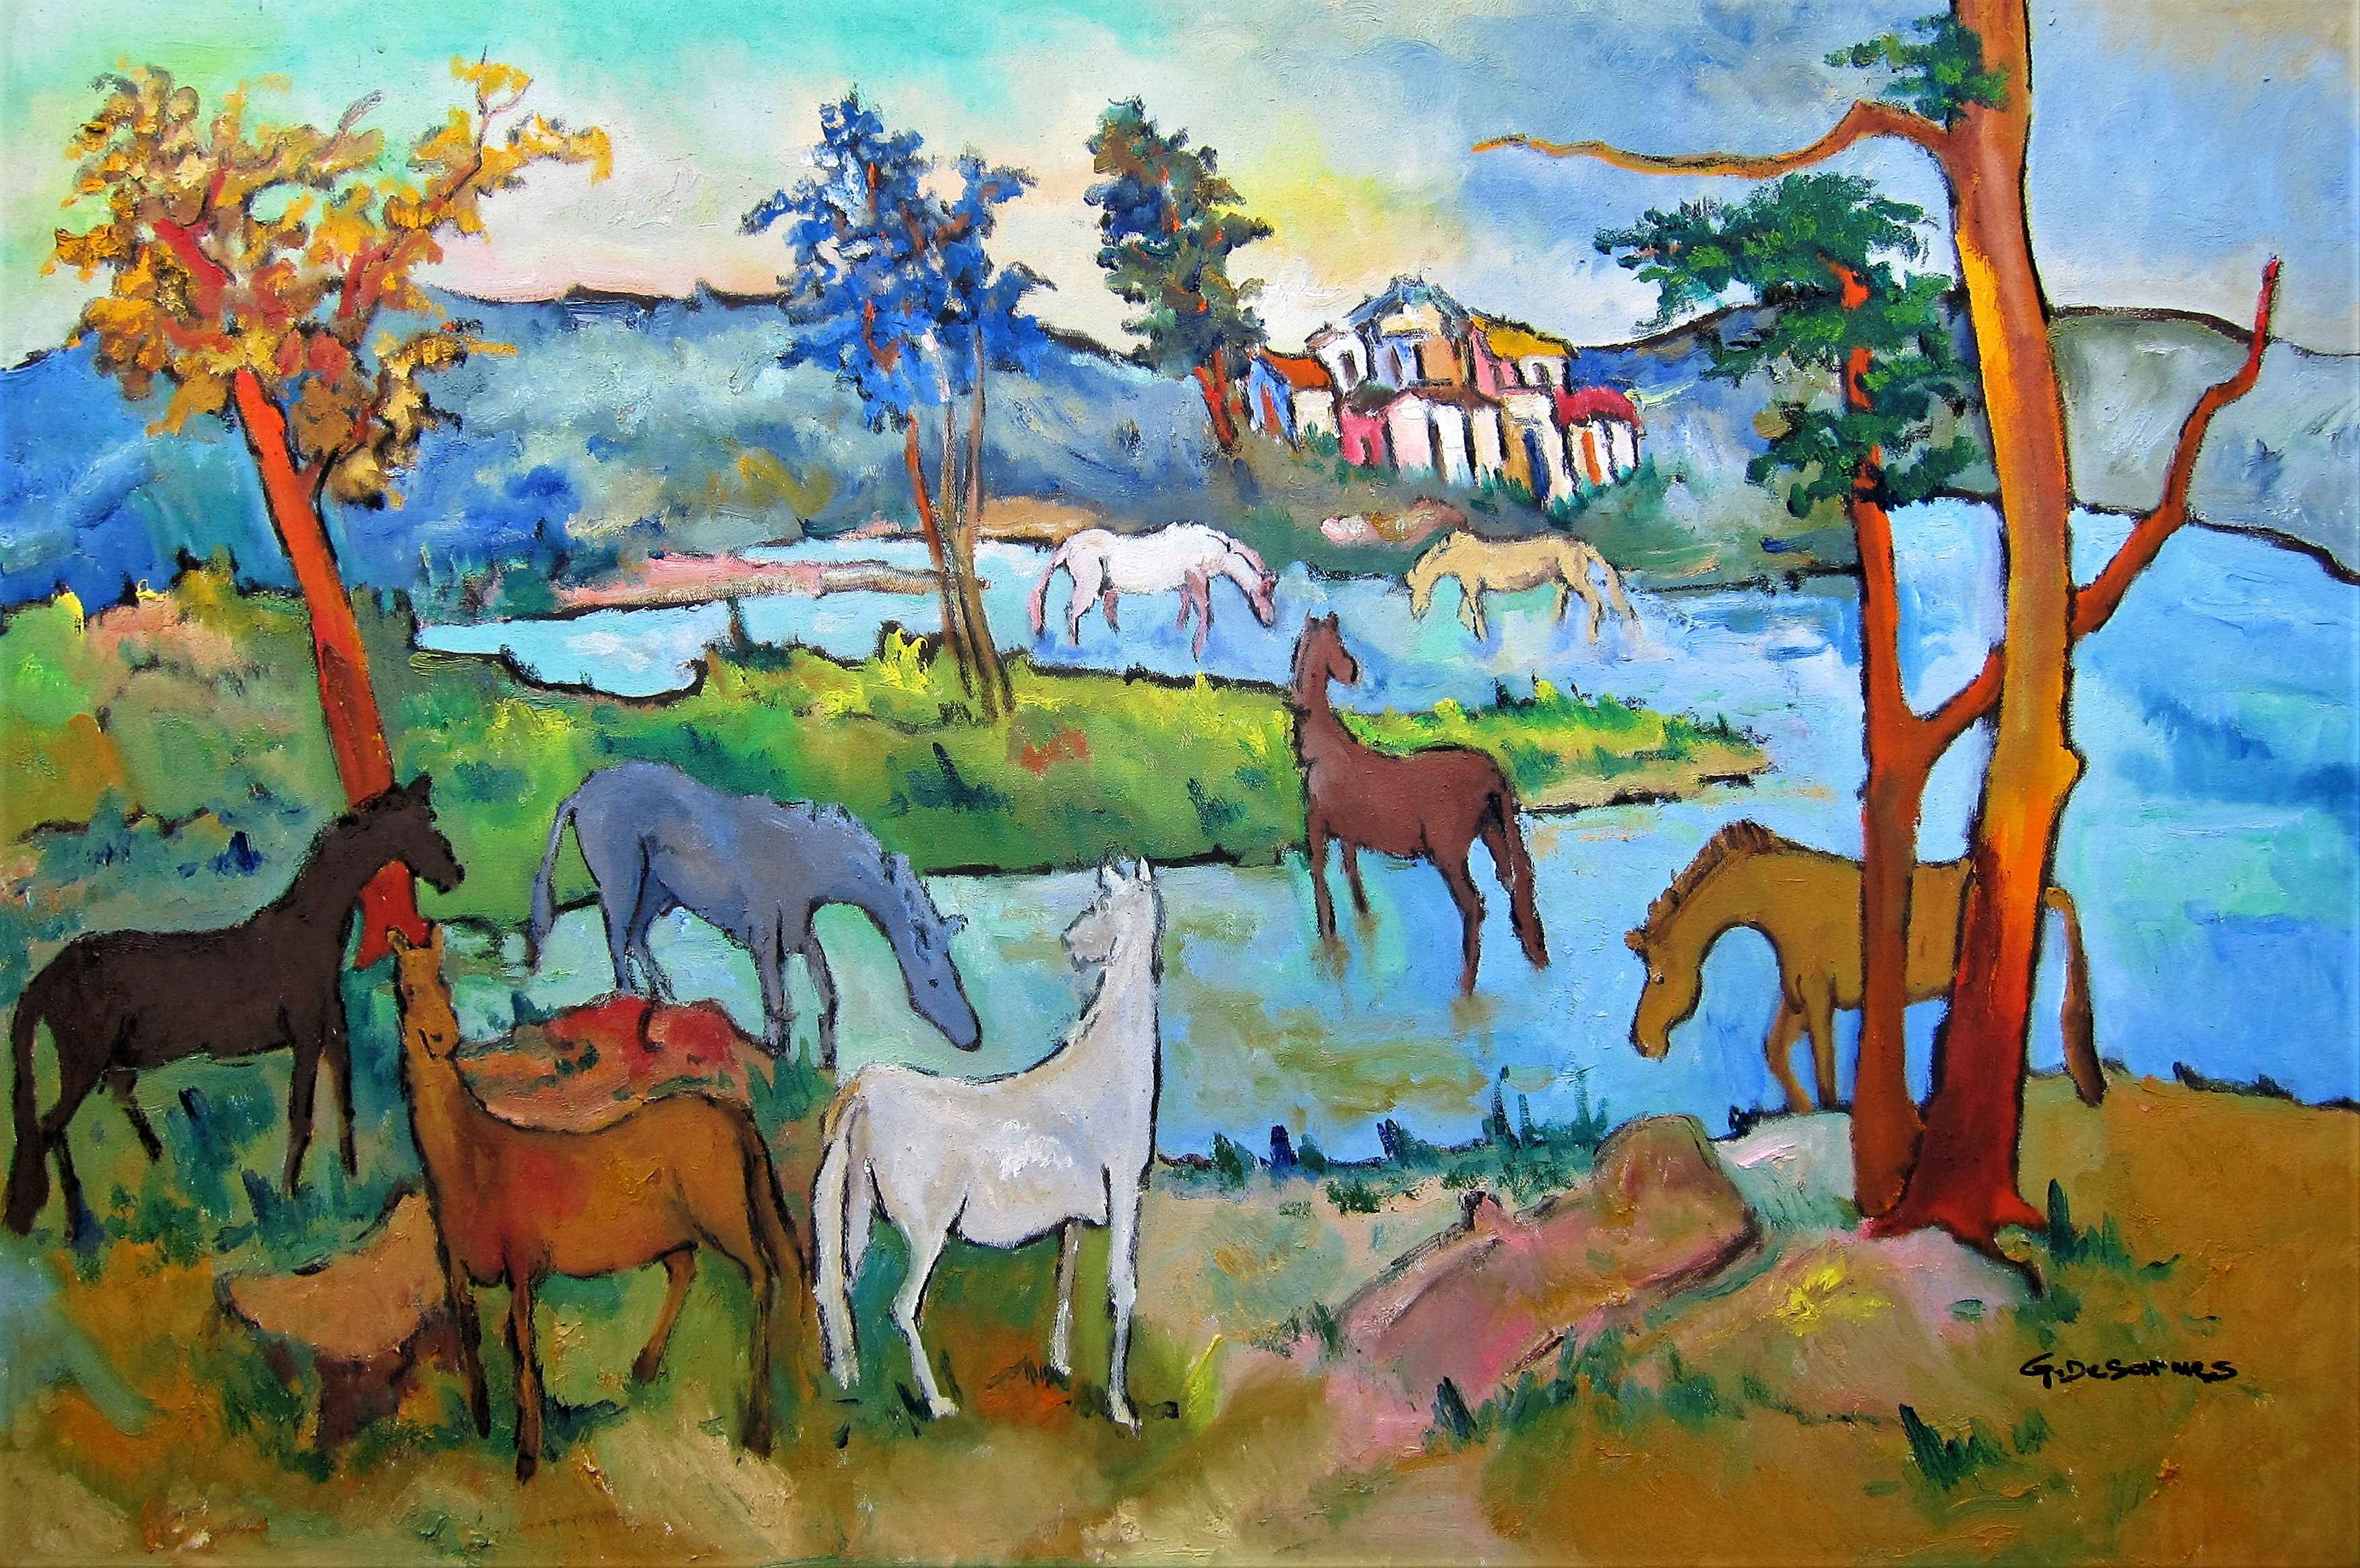 The Horses by  Georges DESARMES - Masterpiece Online